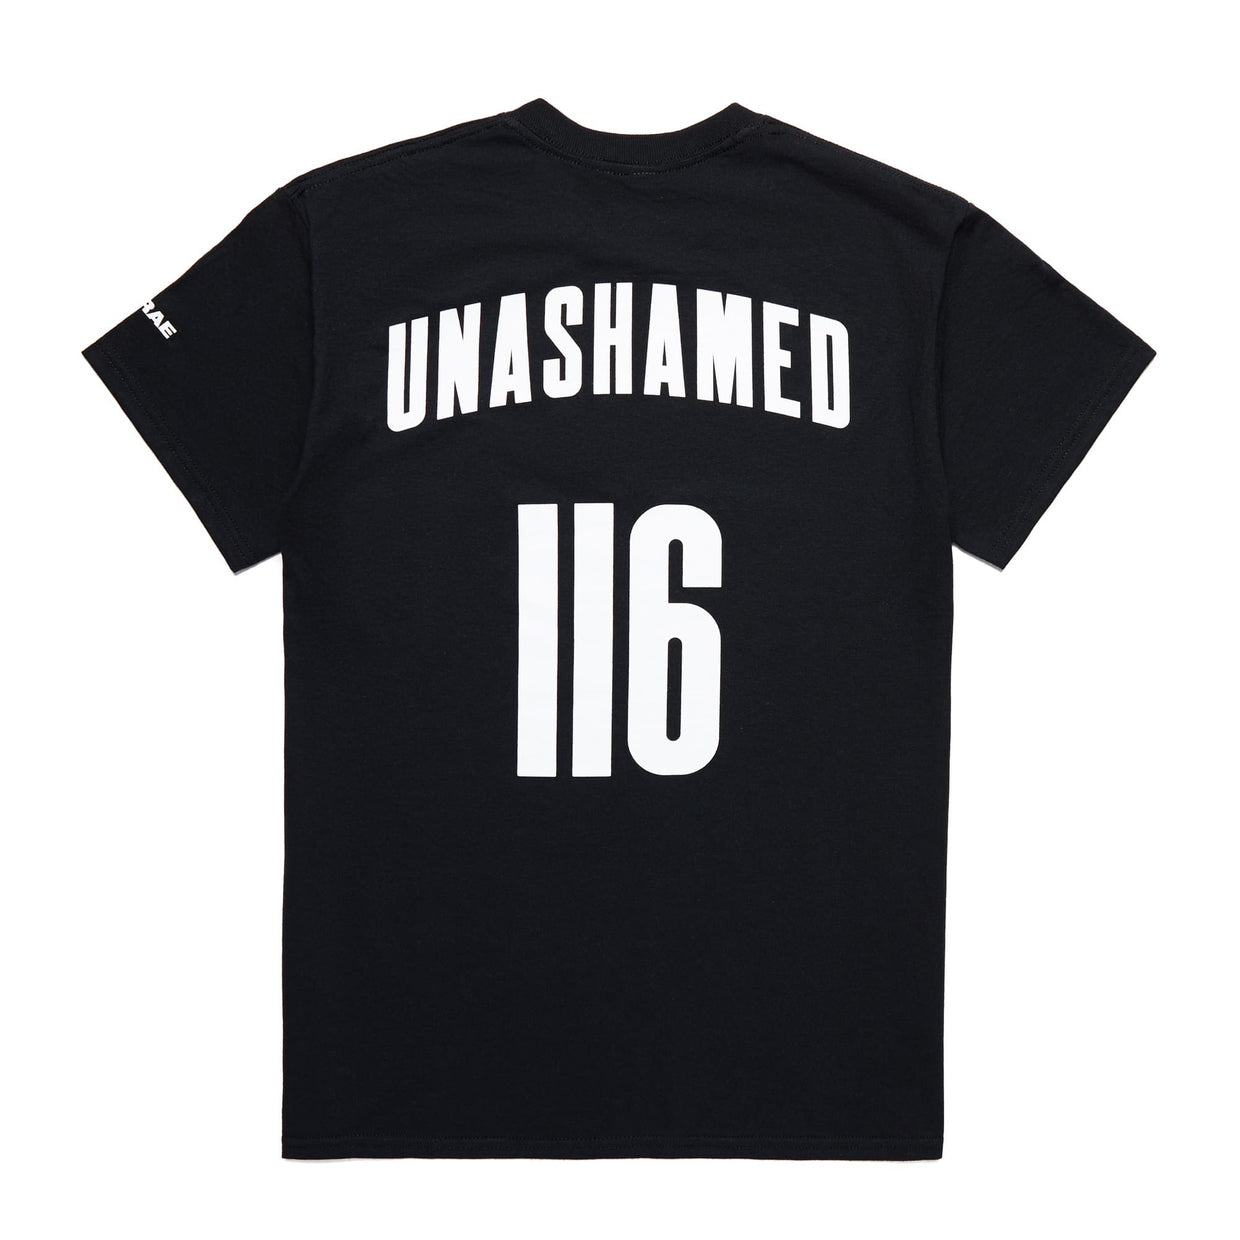 'Unashamed 116 Team' Tee